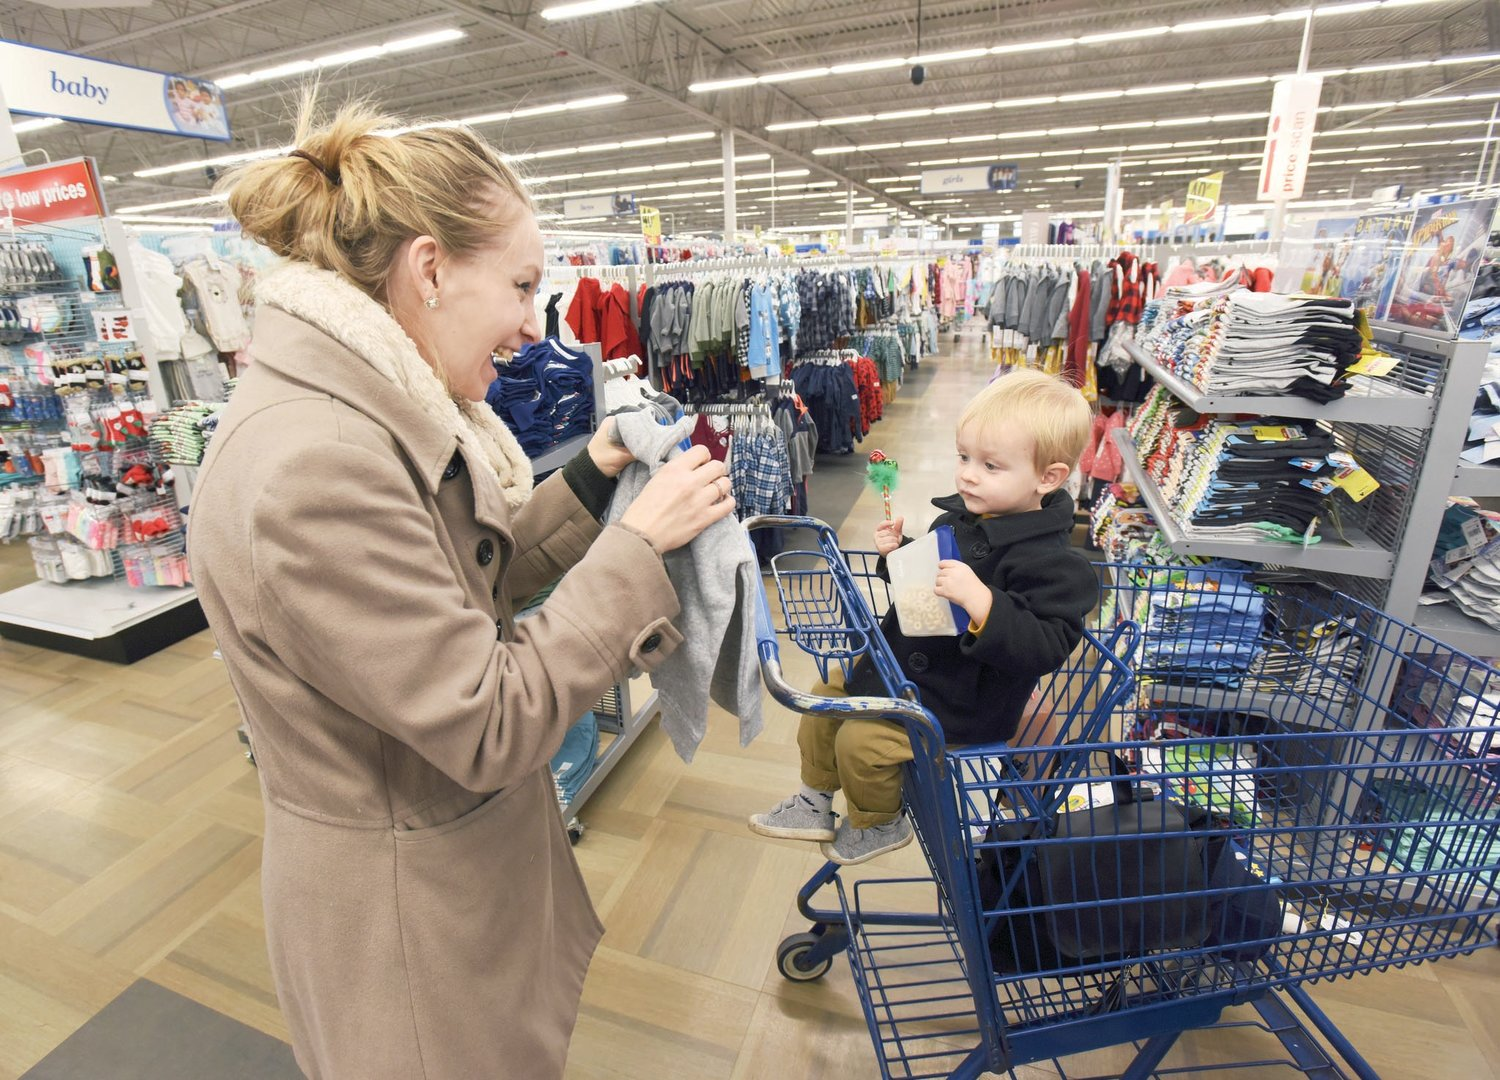 Karin Bader and two-year-old son Calvin, of Chicago, shop in the children's clothing section during Black Friday week at the Meijer store in Stevensville, Michigan.